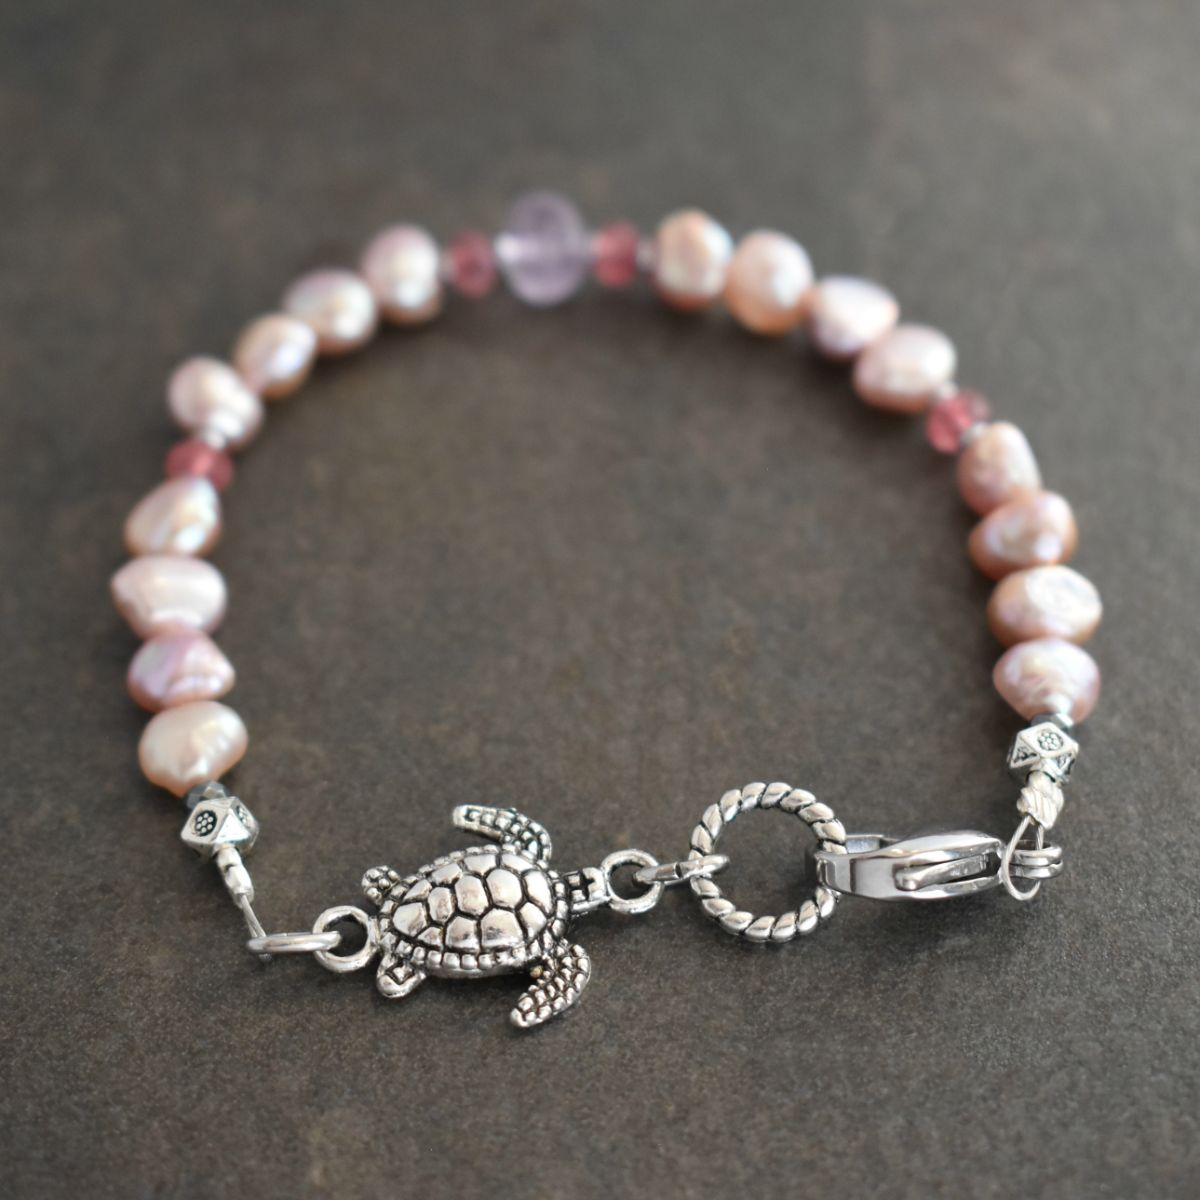 Sea Turtle Bracelet with Pink Pearls